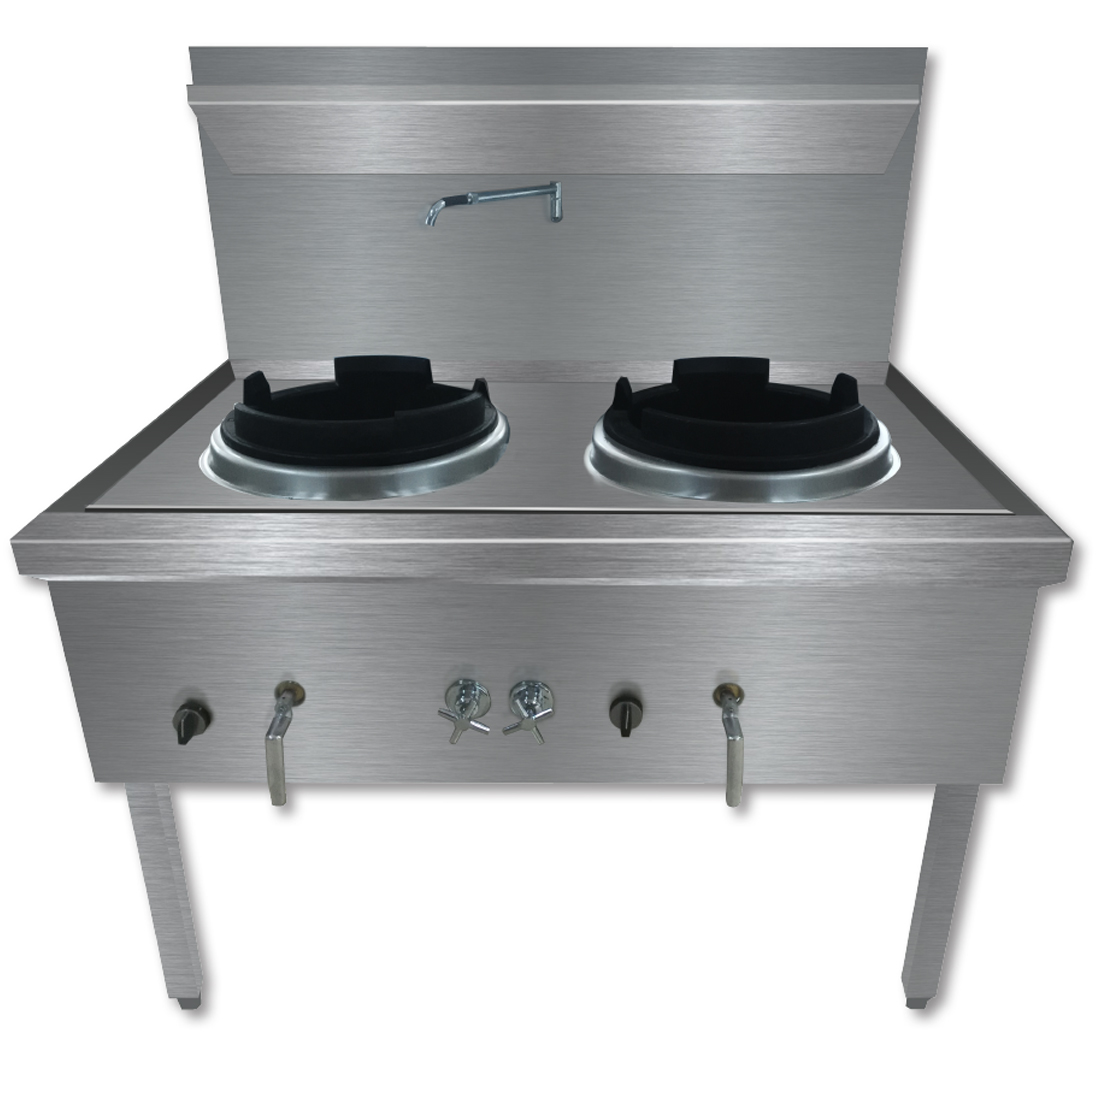 WW-2N Stainless Steel Waterless Nature Gas Double Wok